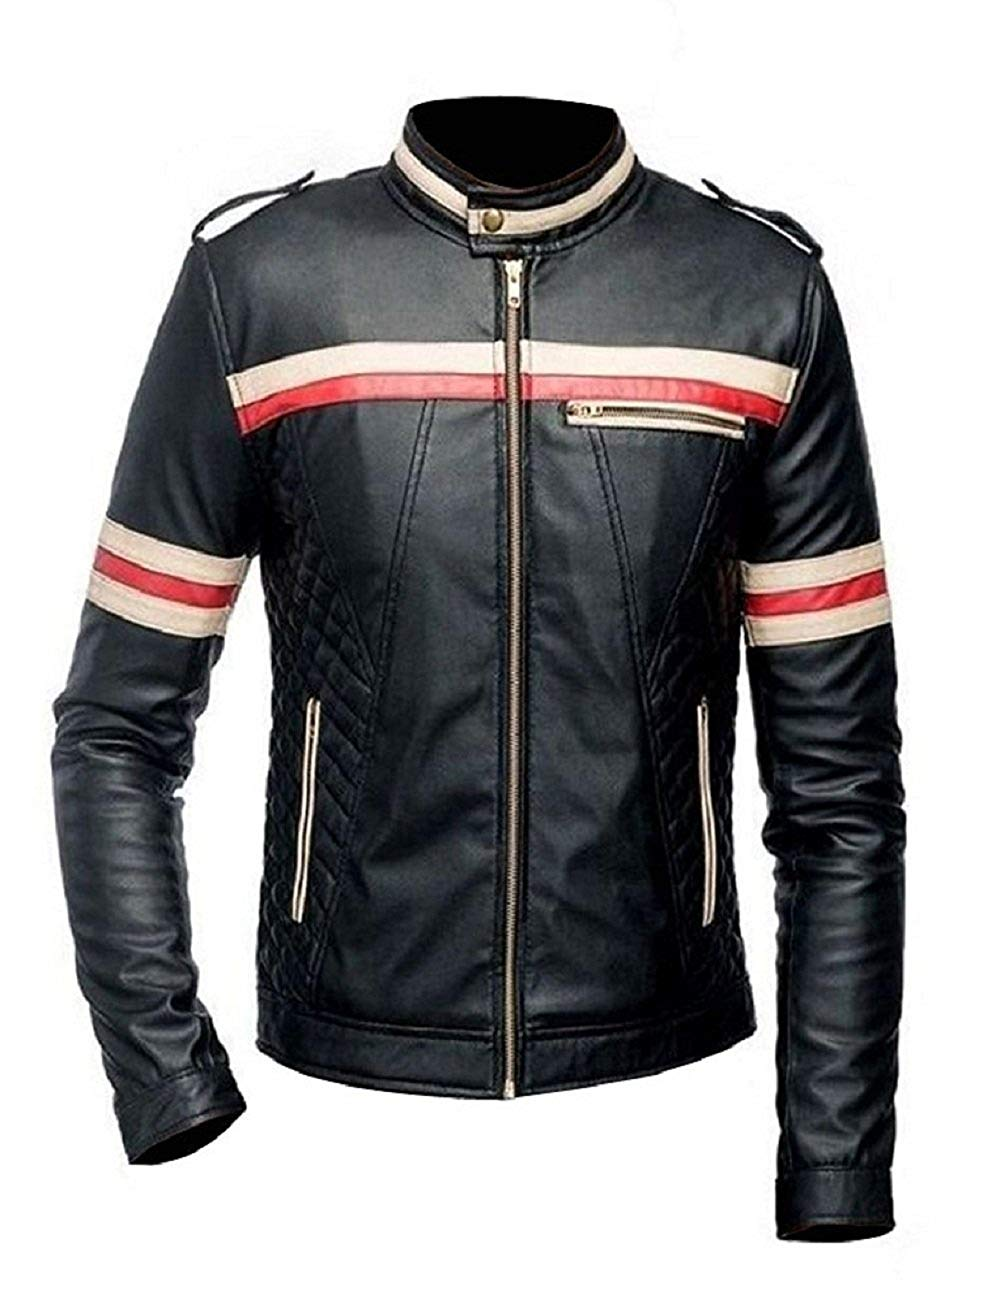 MenBiker Style Motorcycle Genuine Leather Jacket Black with Red and White Stripes